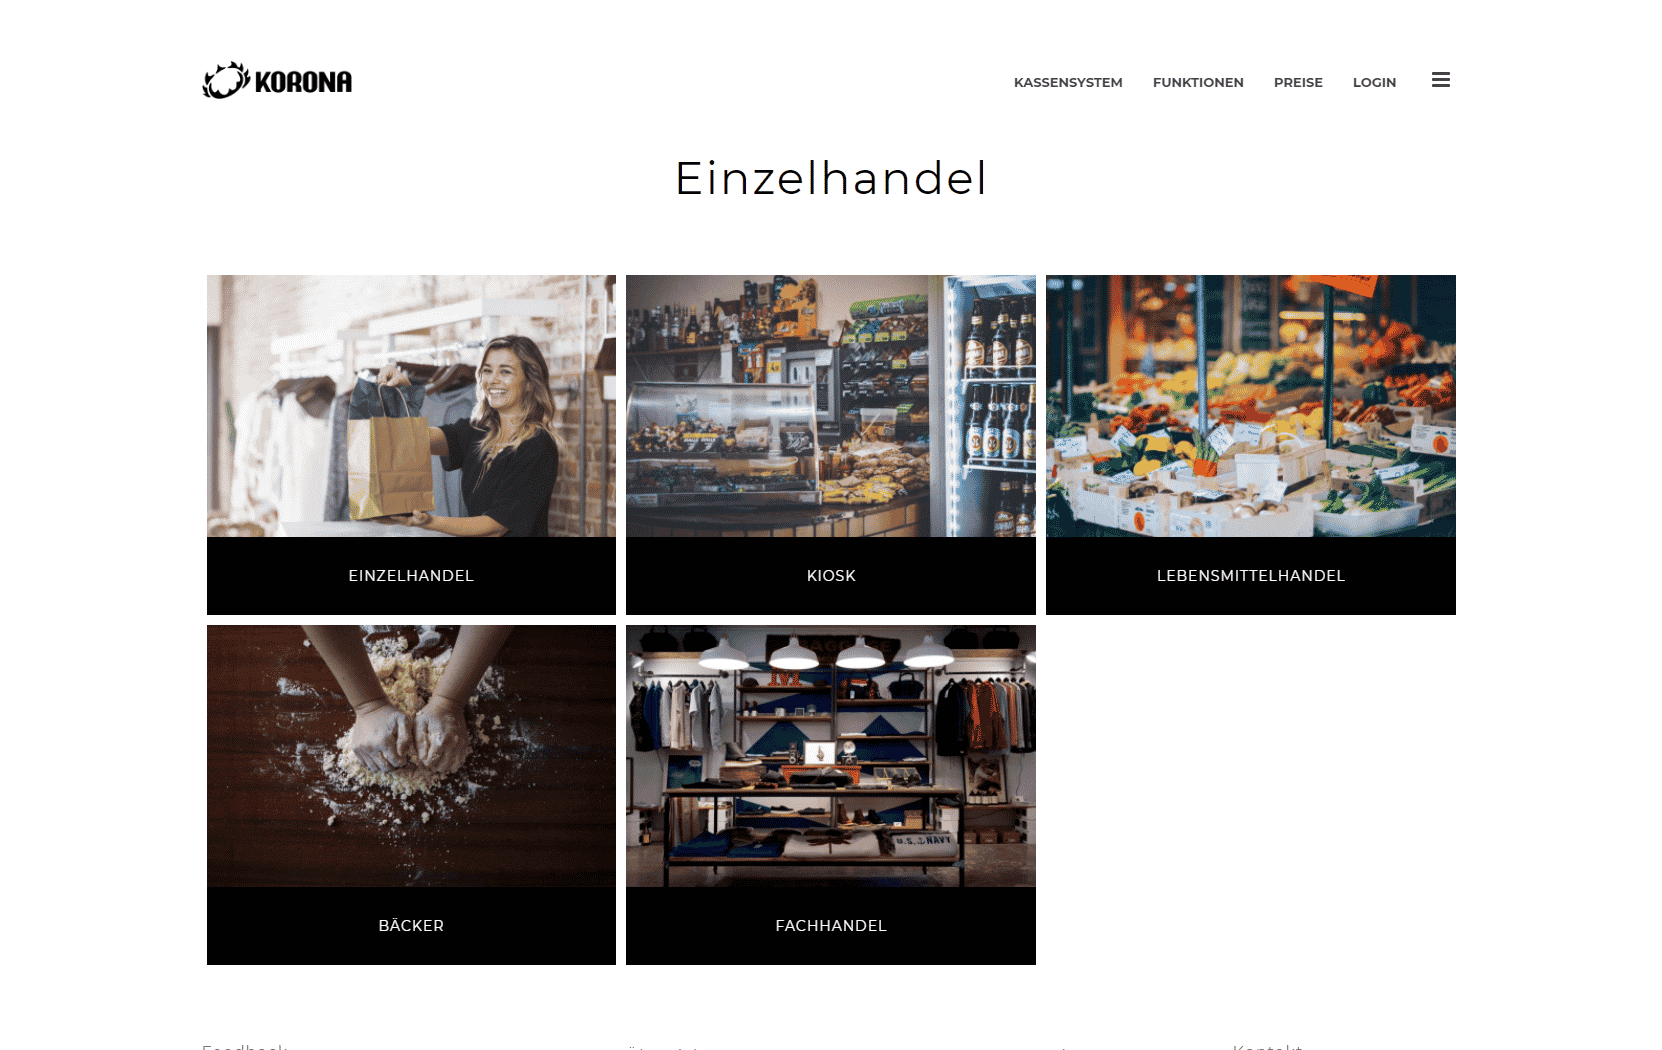 webdesigner webdesign korona kassensystem marketing bremen